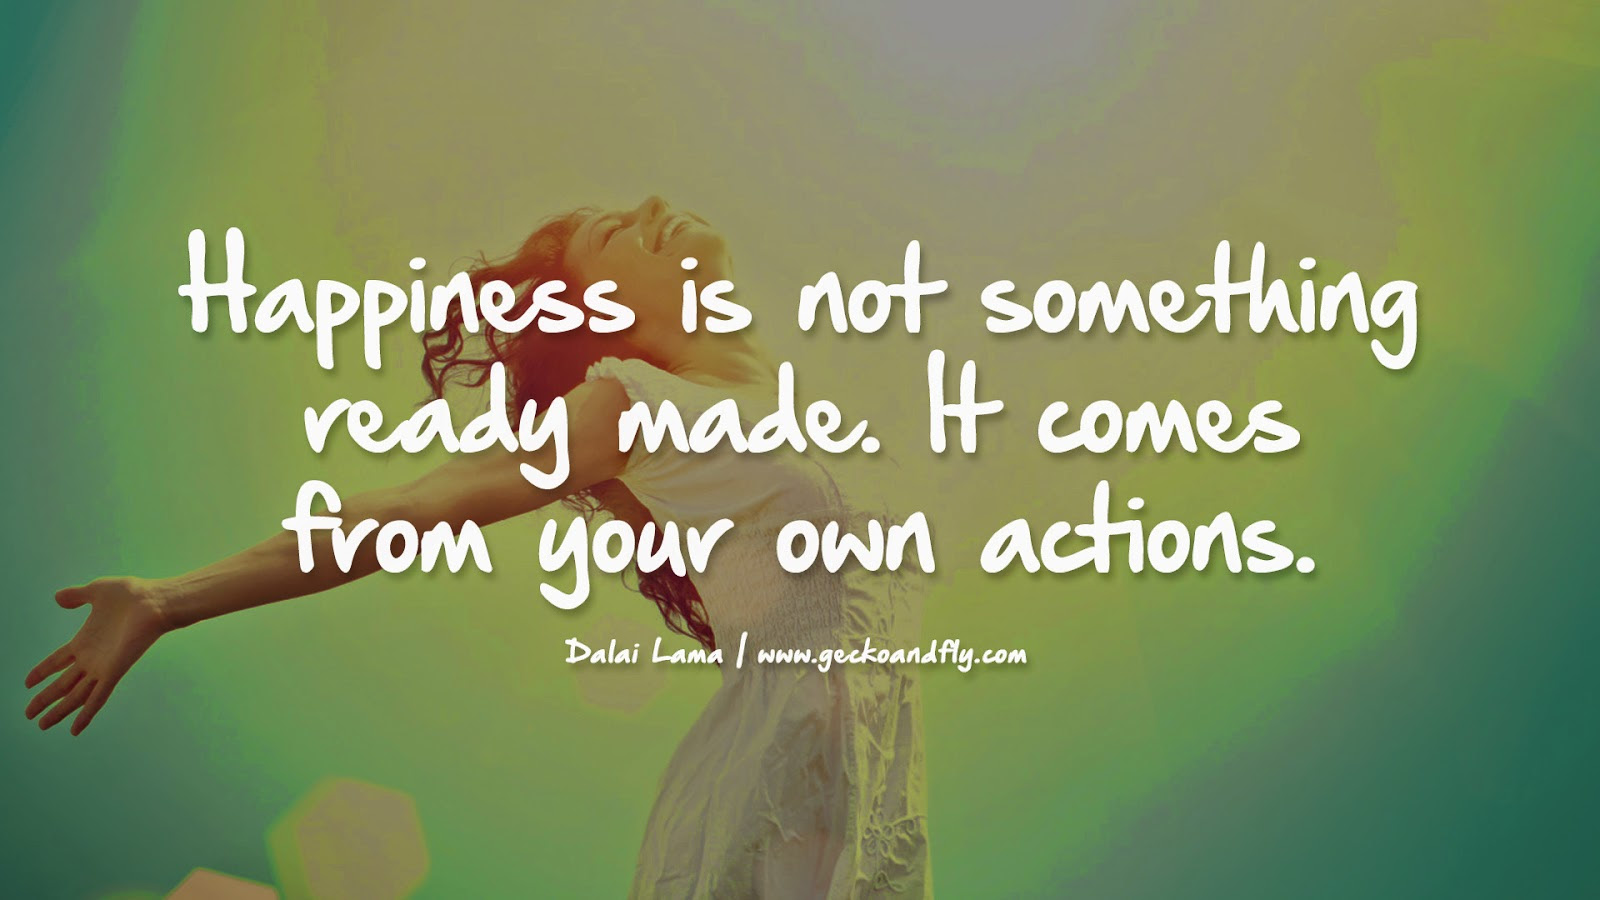 Happiness Quotes By Famous People. QuotesGram